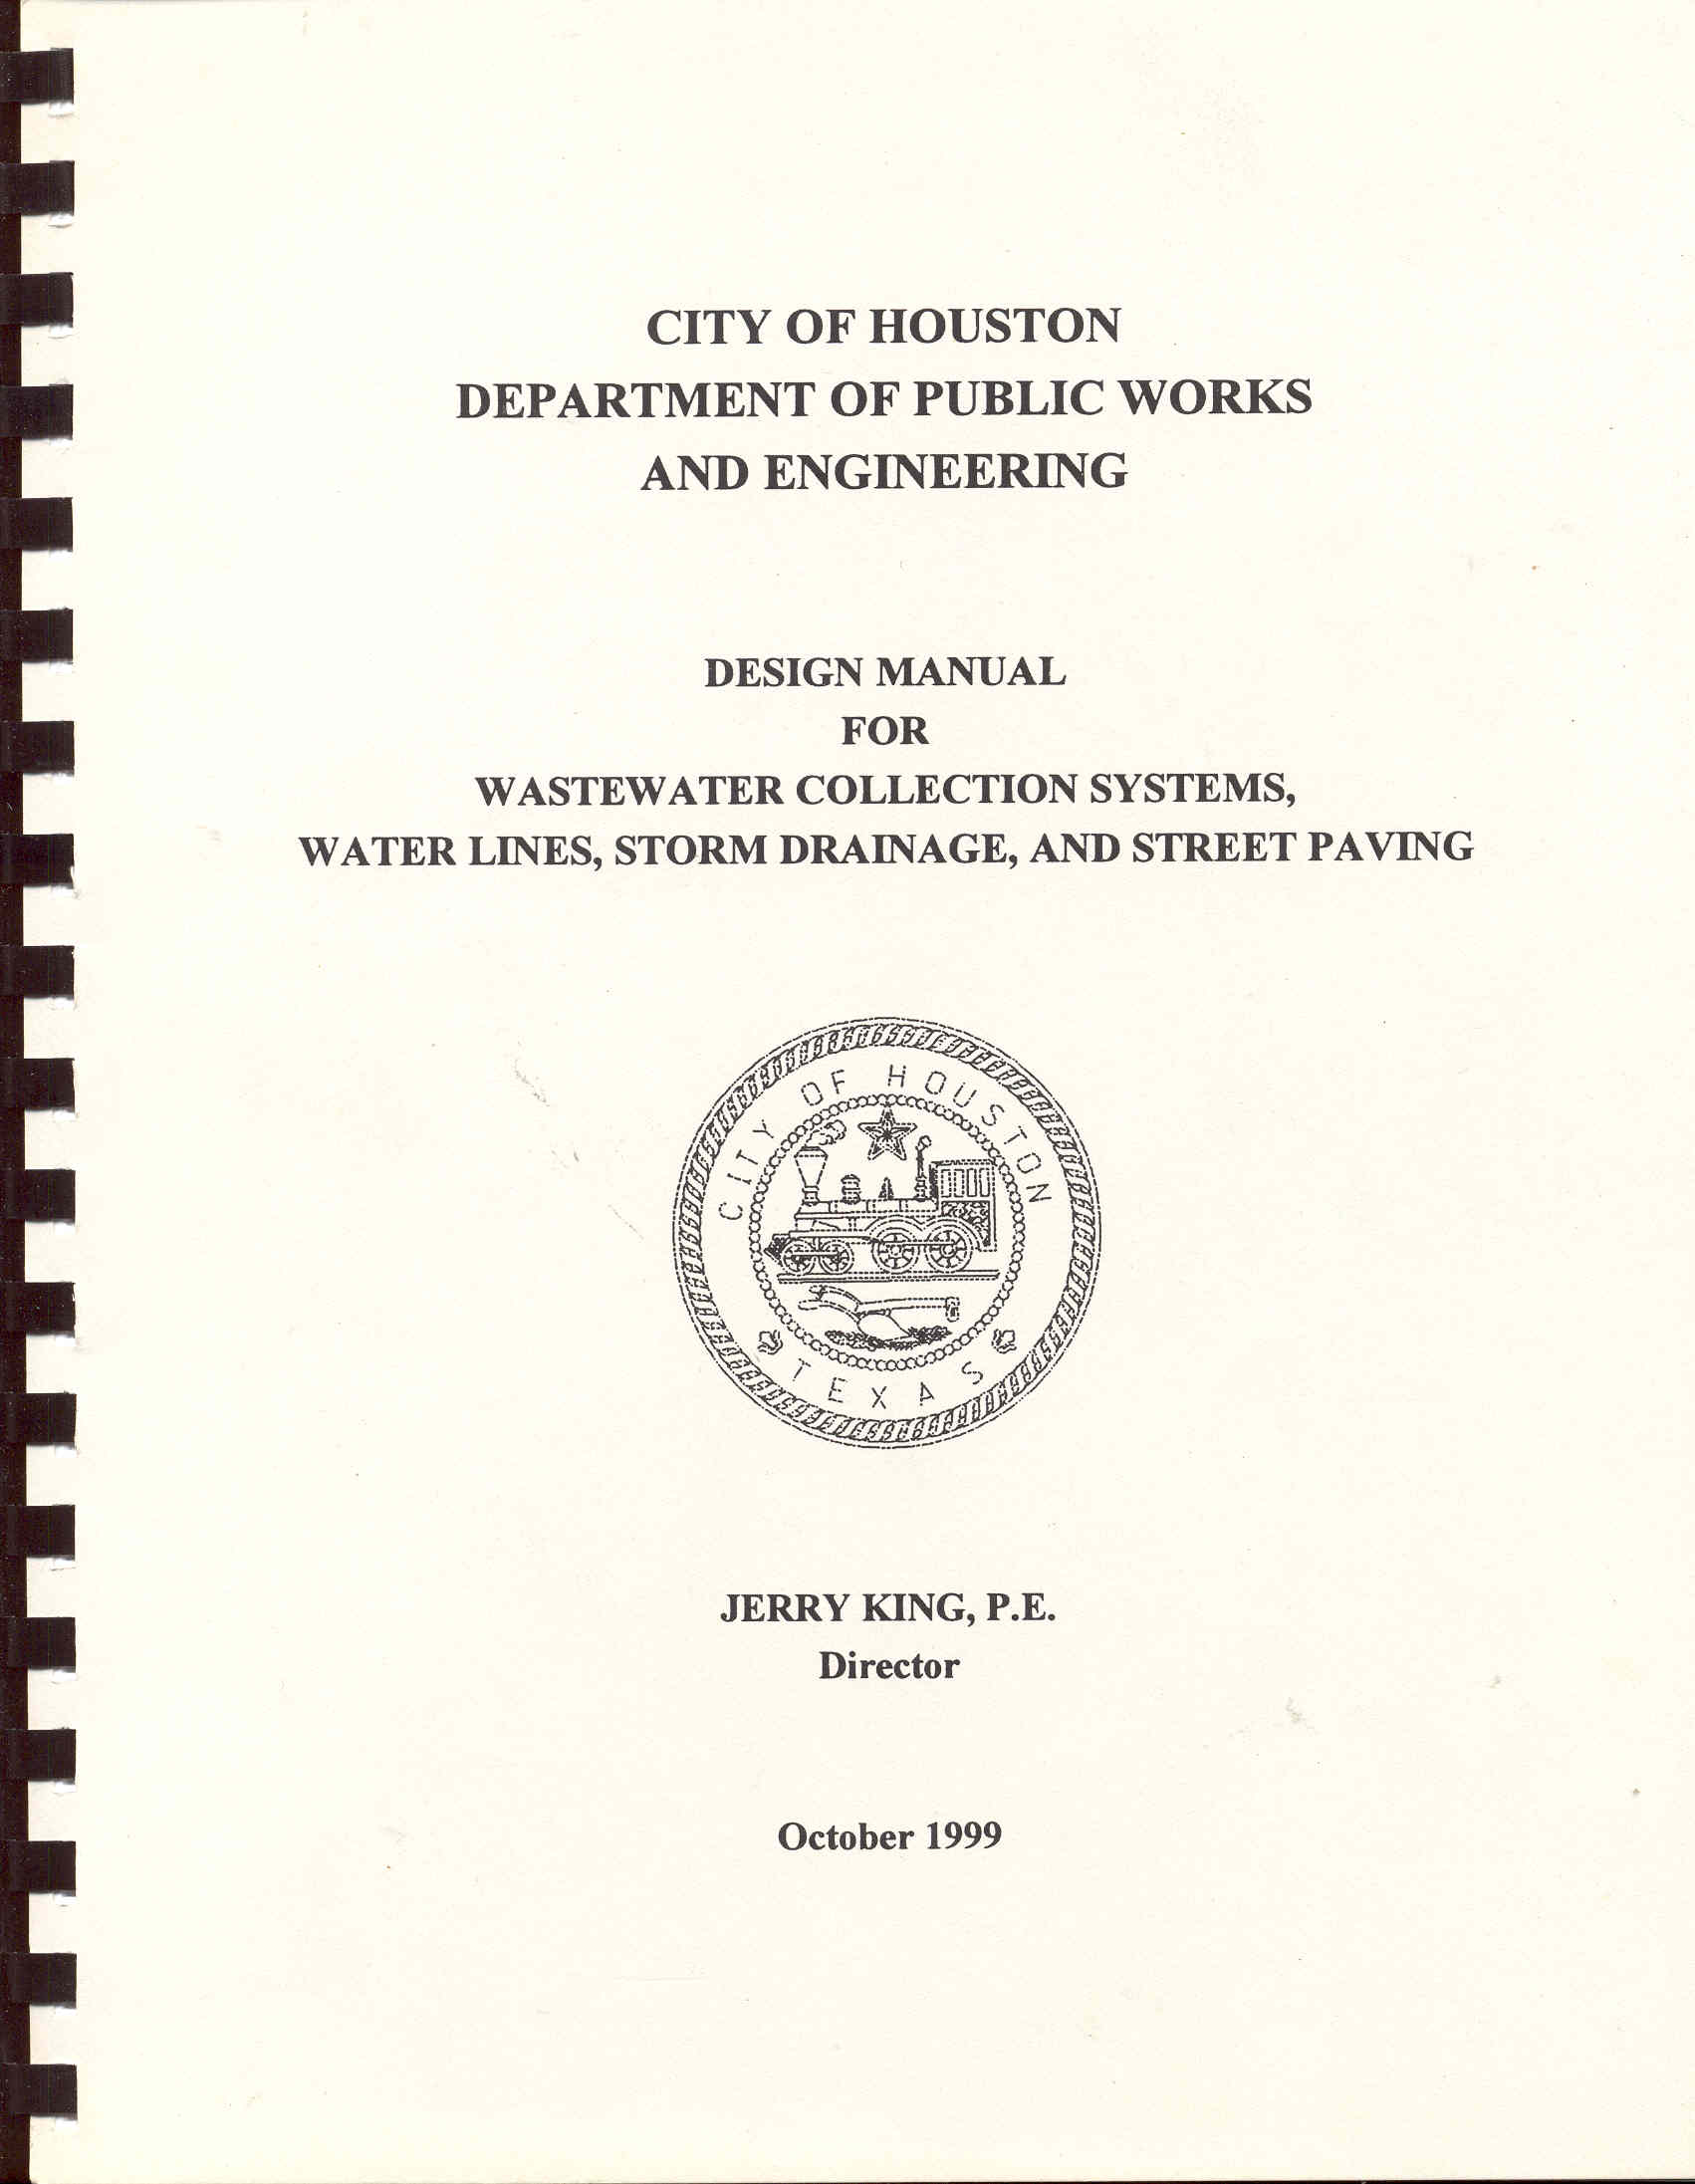 Image for Design Manual for Wastewater Collection Systems, Water Lines, Storm Drainage, and Street Paving